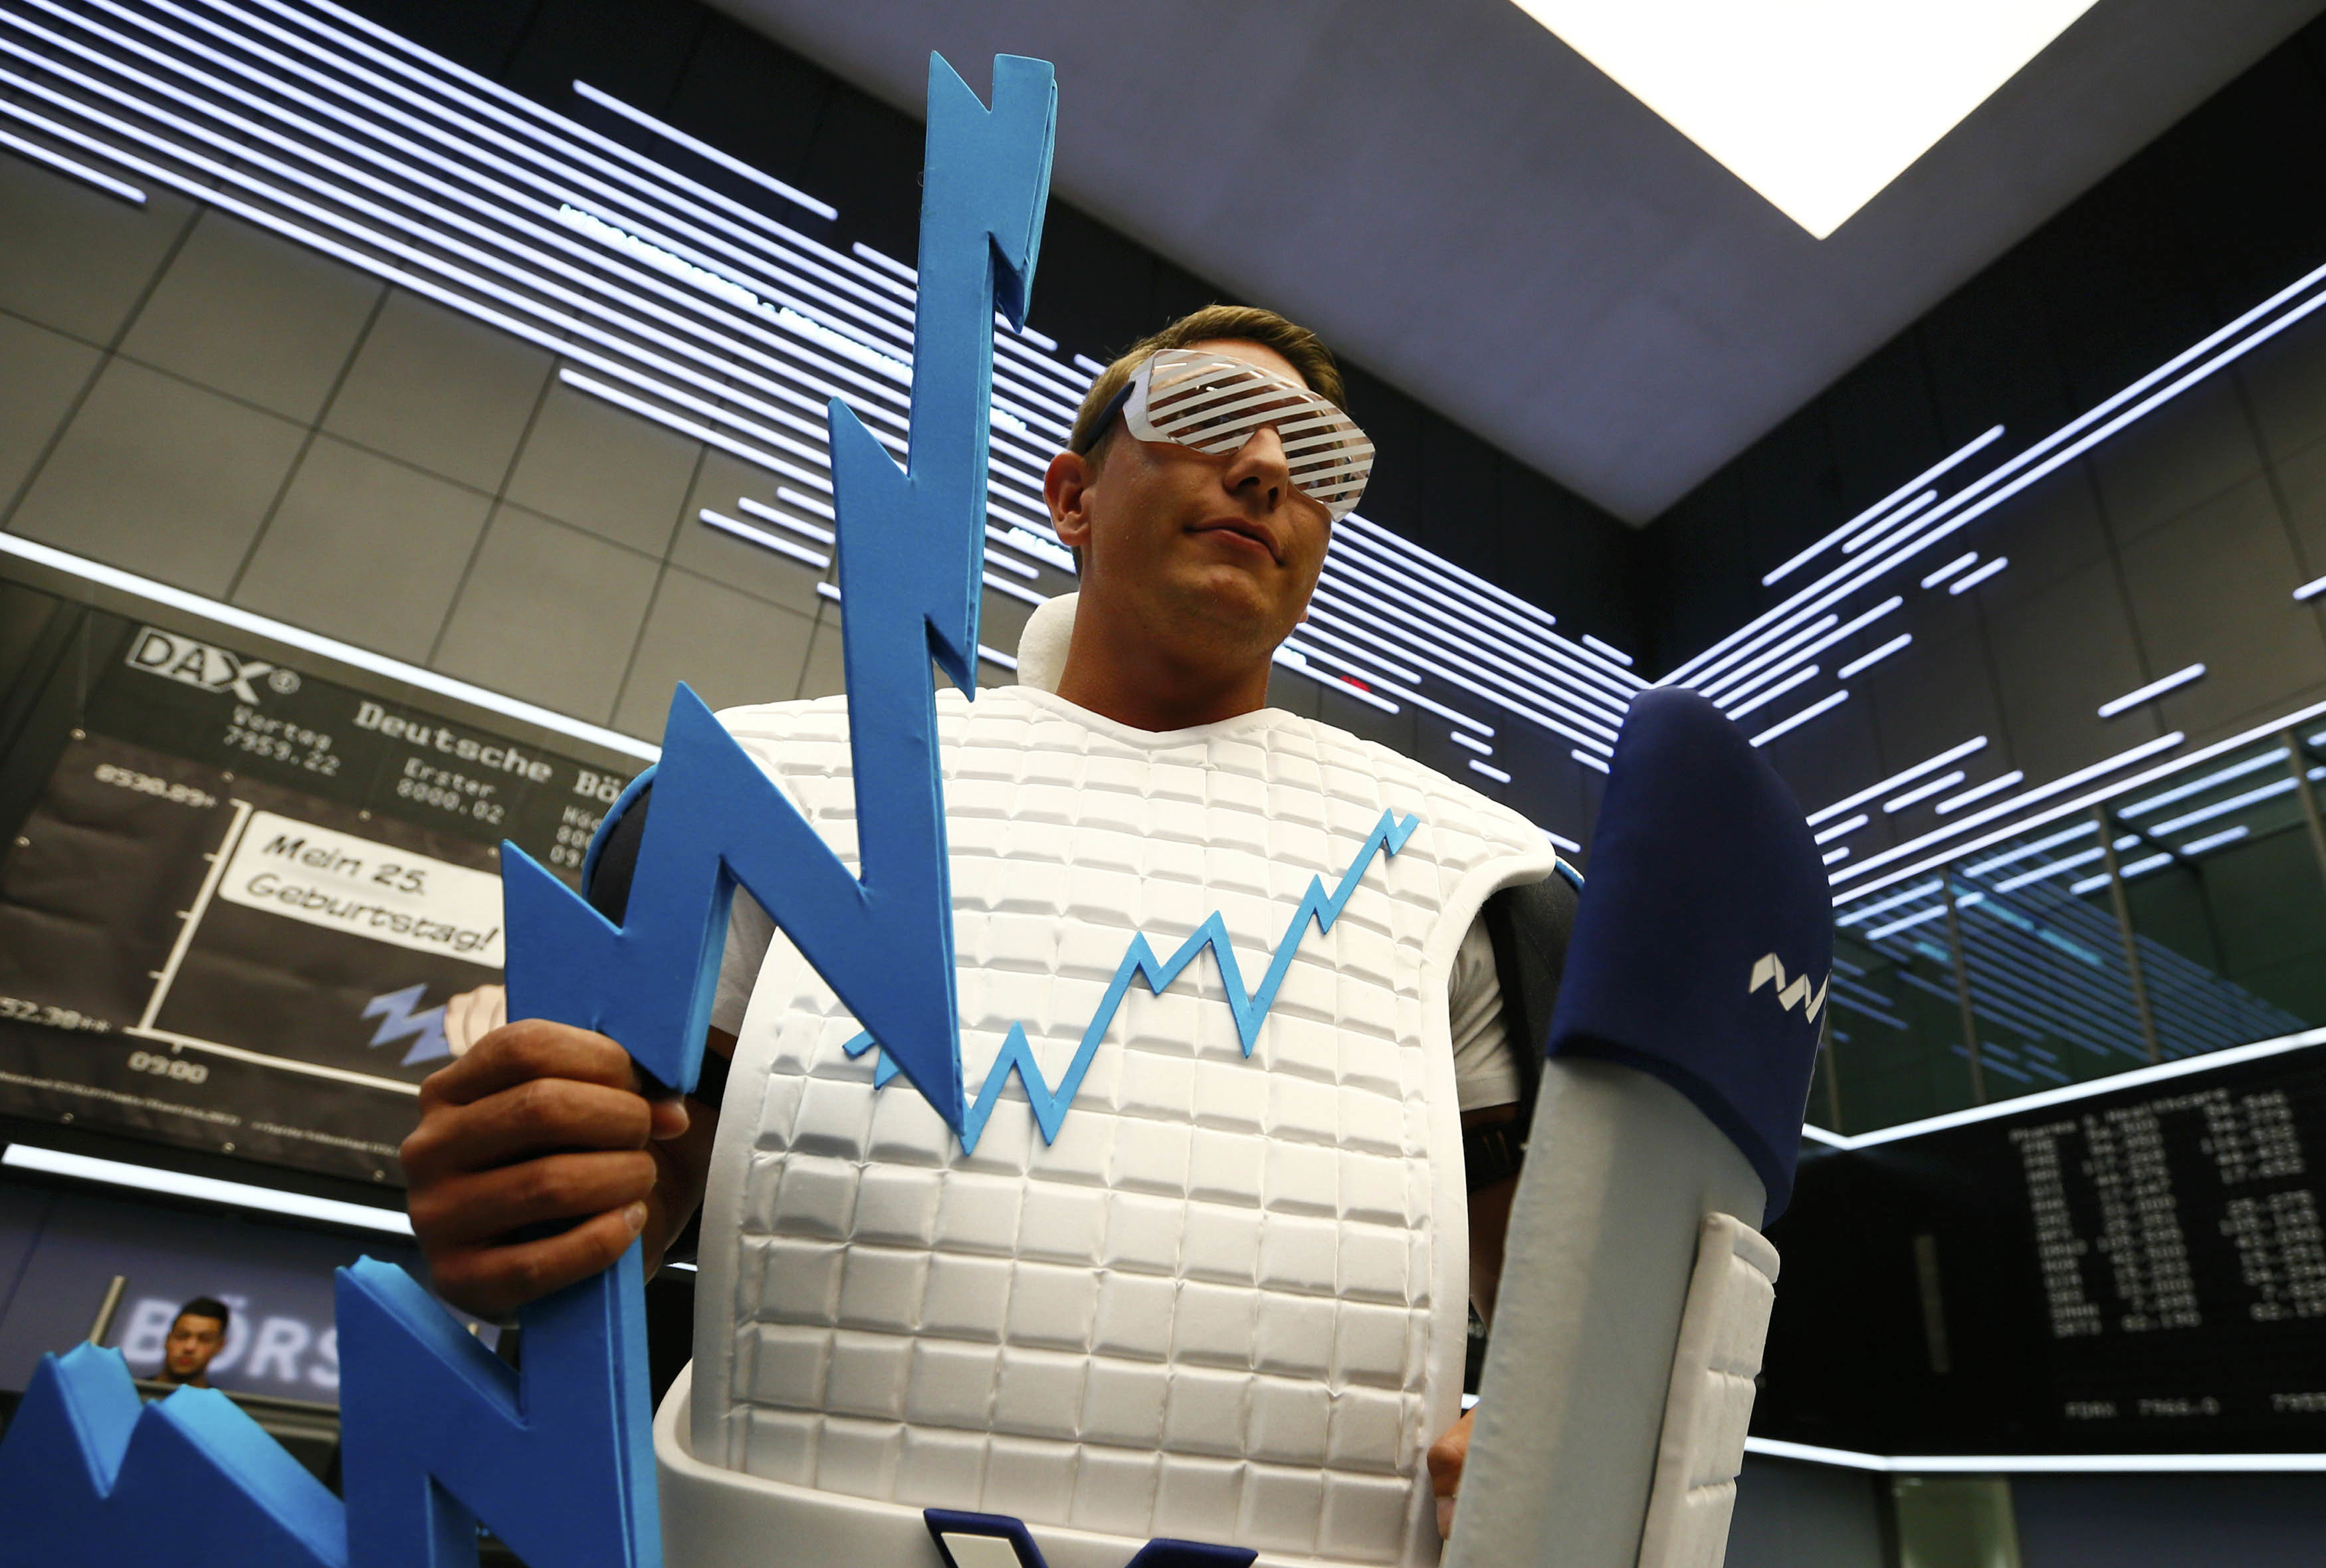 a man dressed in a costume representing a positive business growth